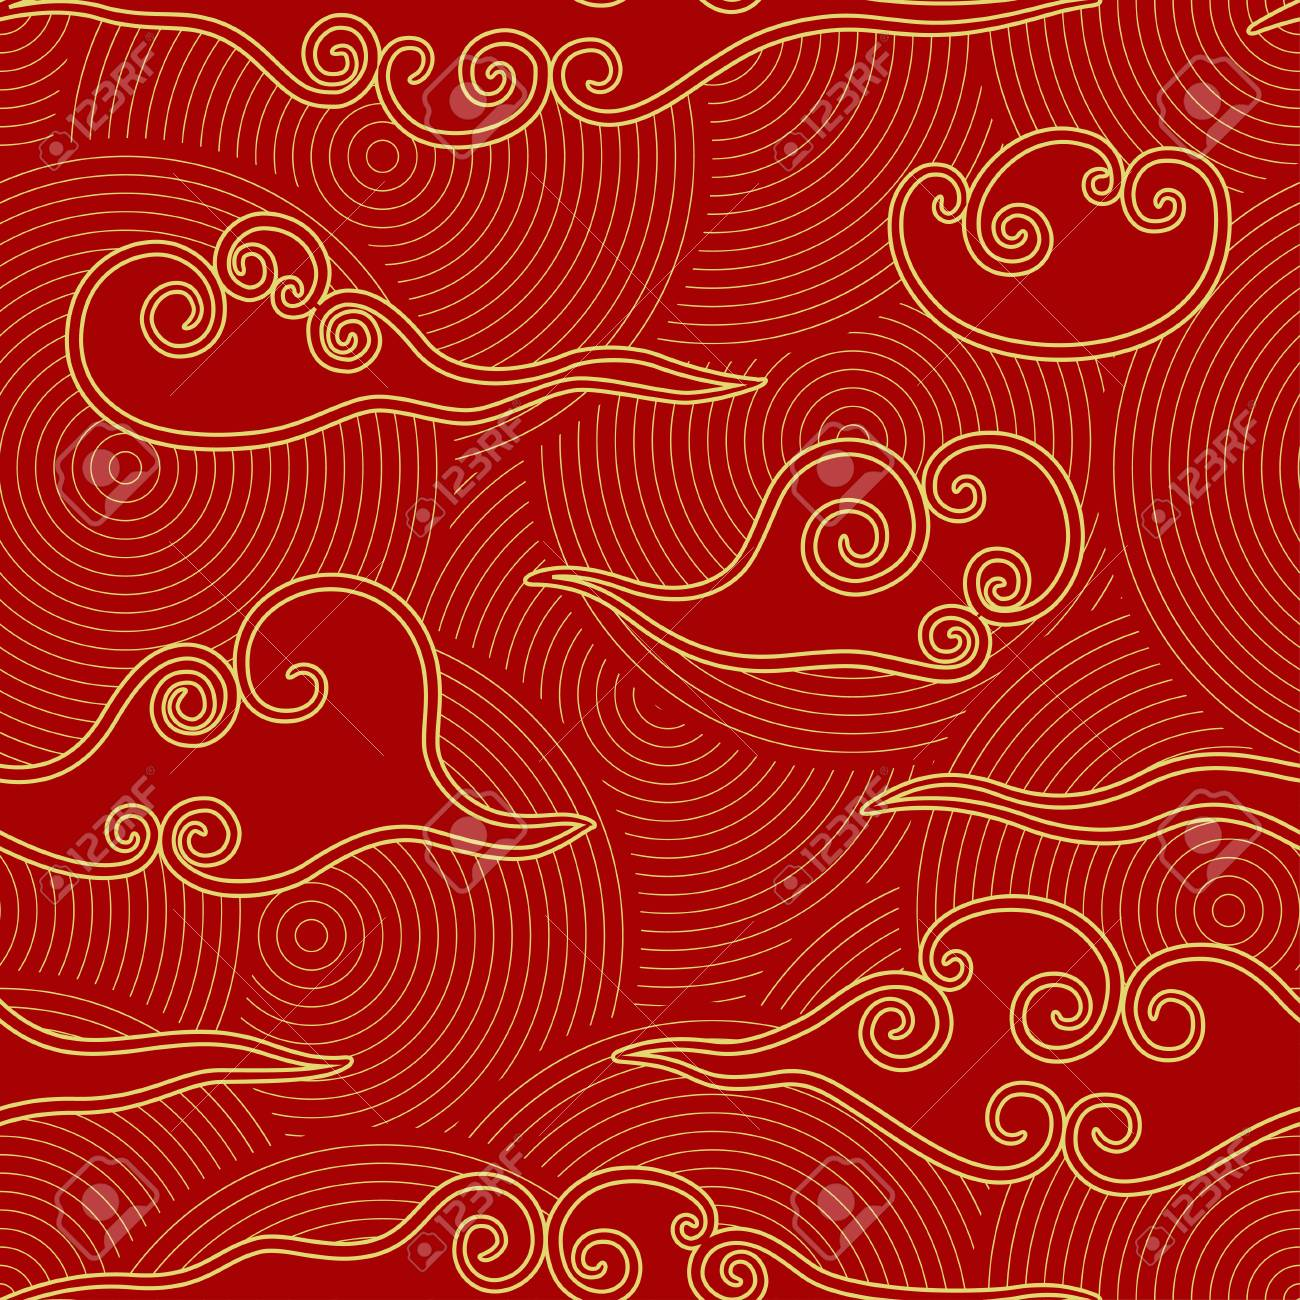 Chinese style clouds red and gold seamless pattern - 117093194